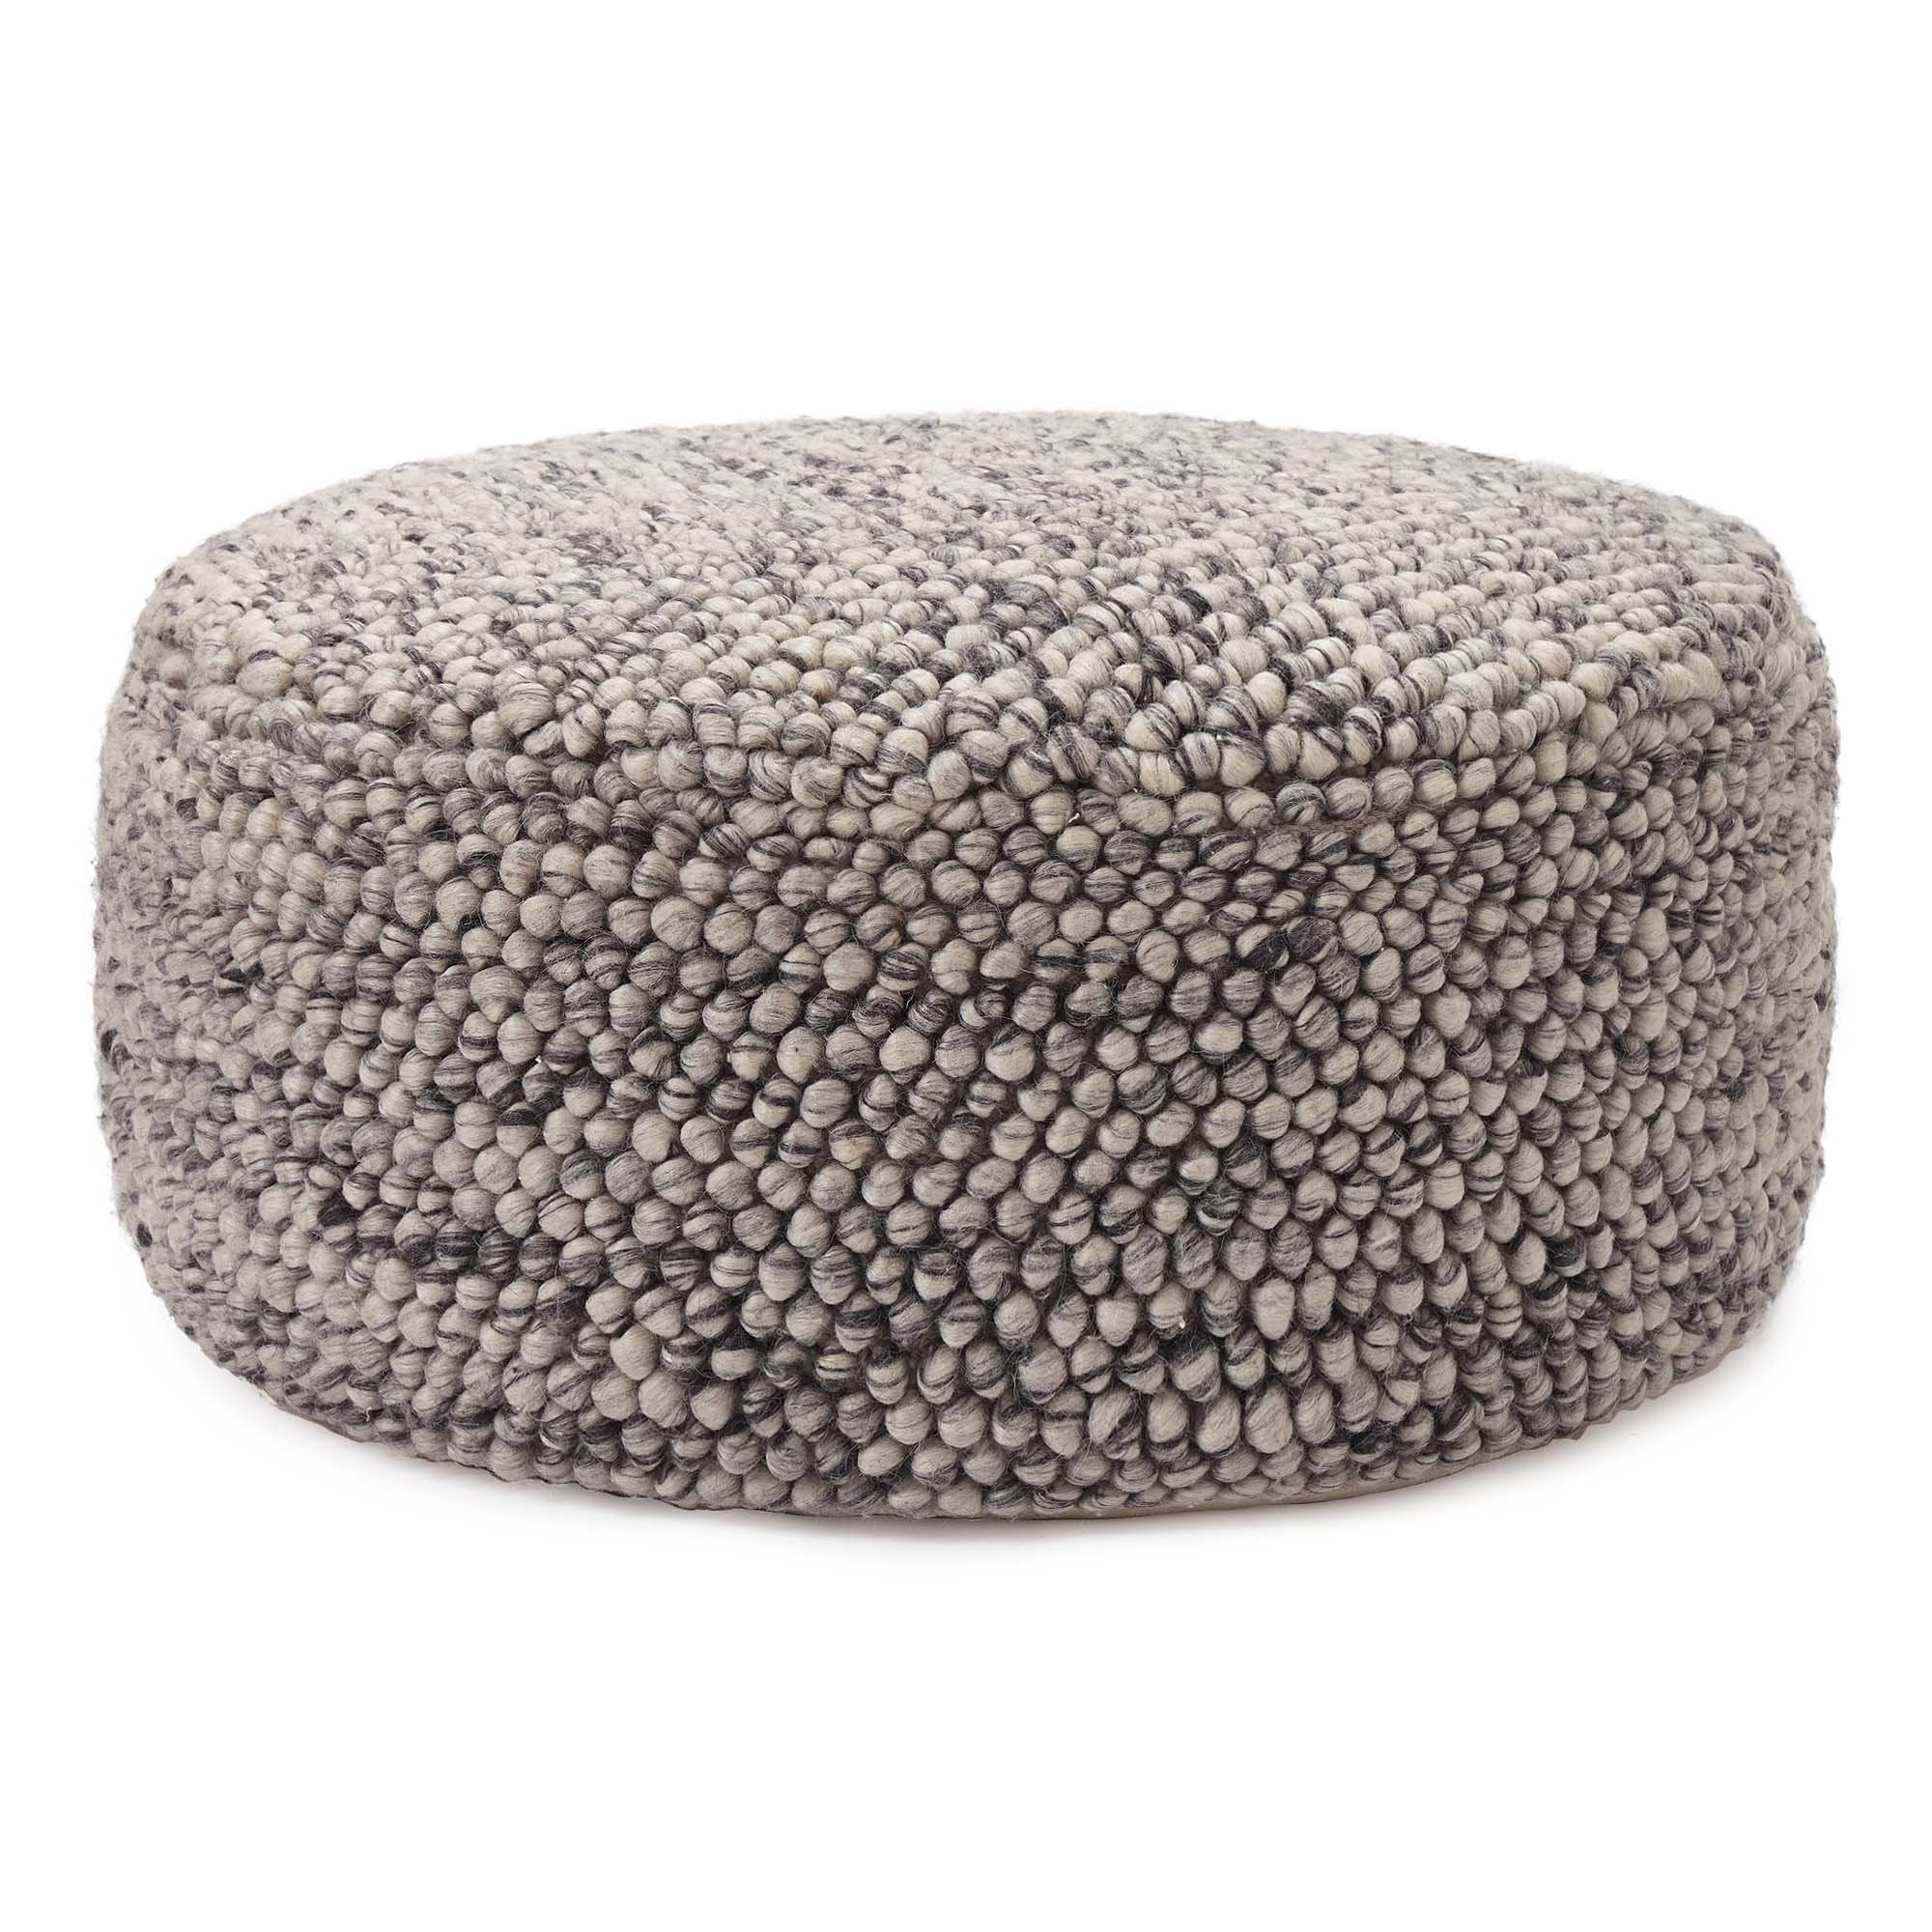 Ravi pouf, off-white & grey, 70% new wool & 30% viscose